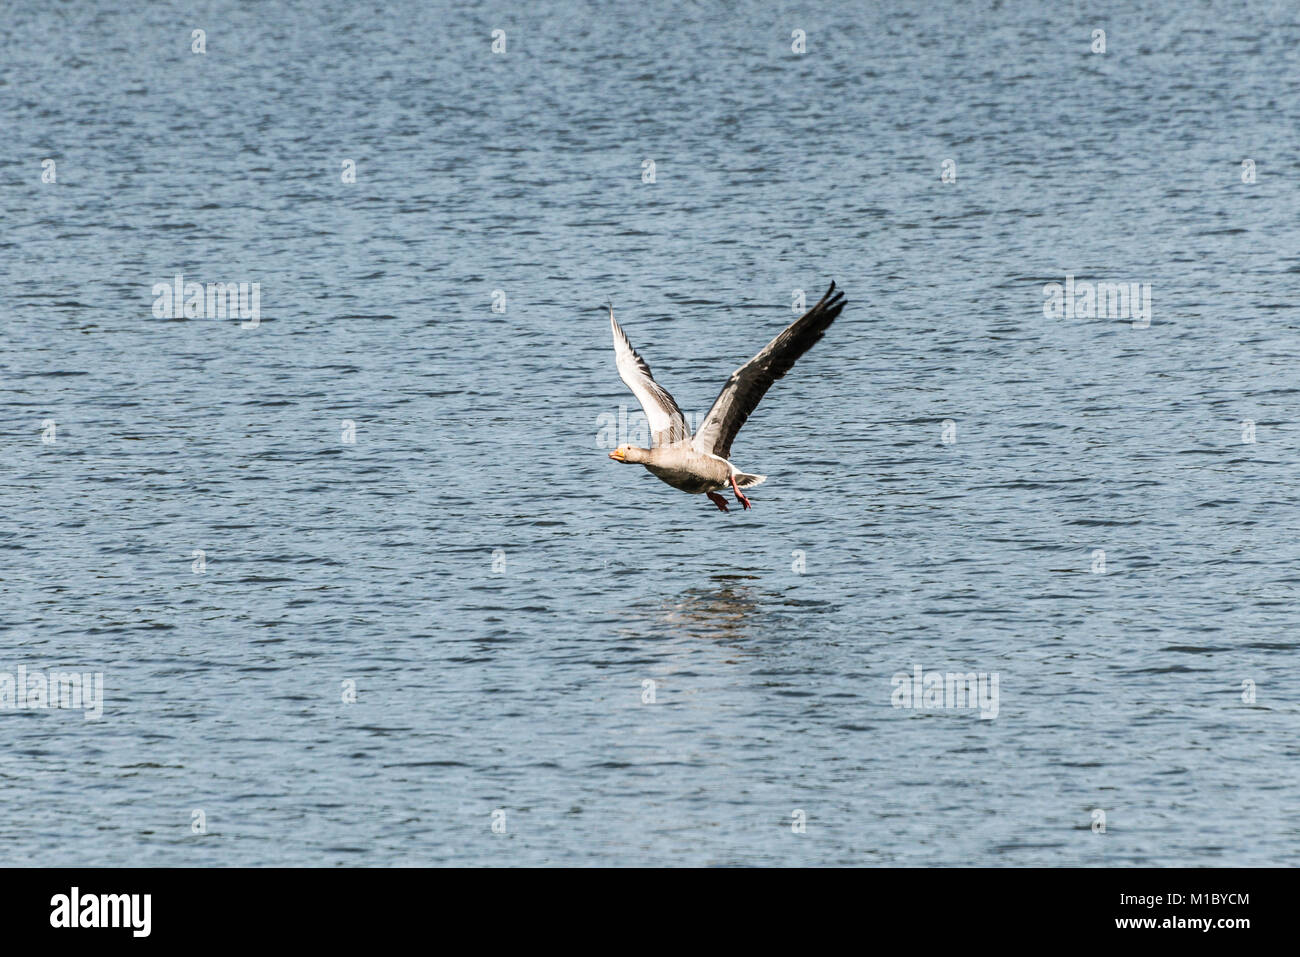 A greylag goose (Anser anser) flying low over a lake just after having taken off Stock Photo